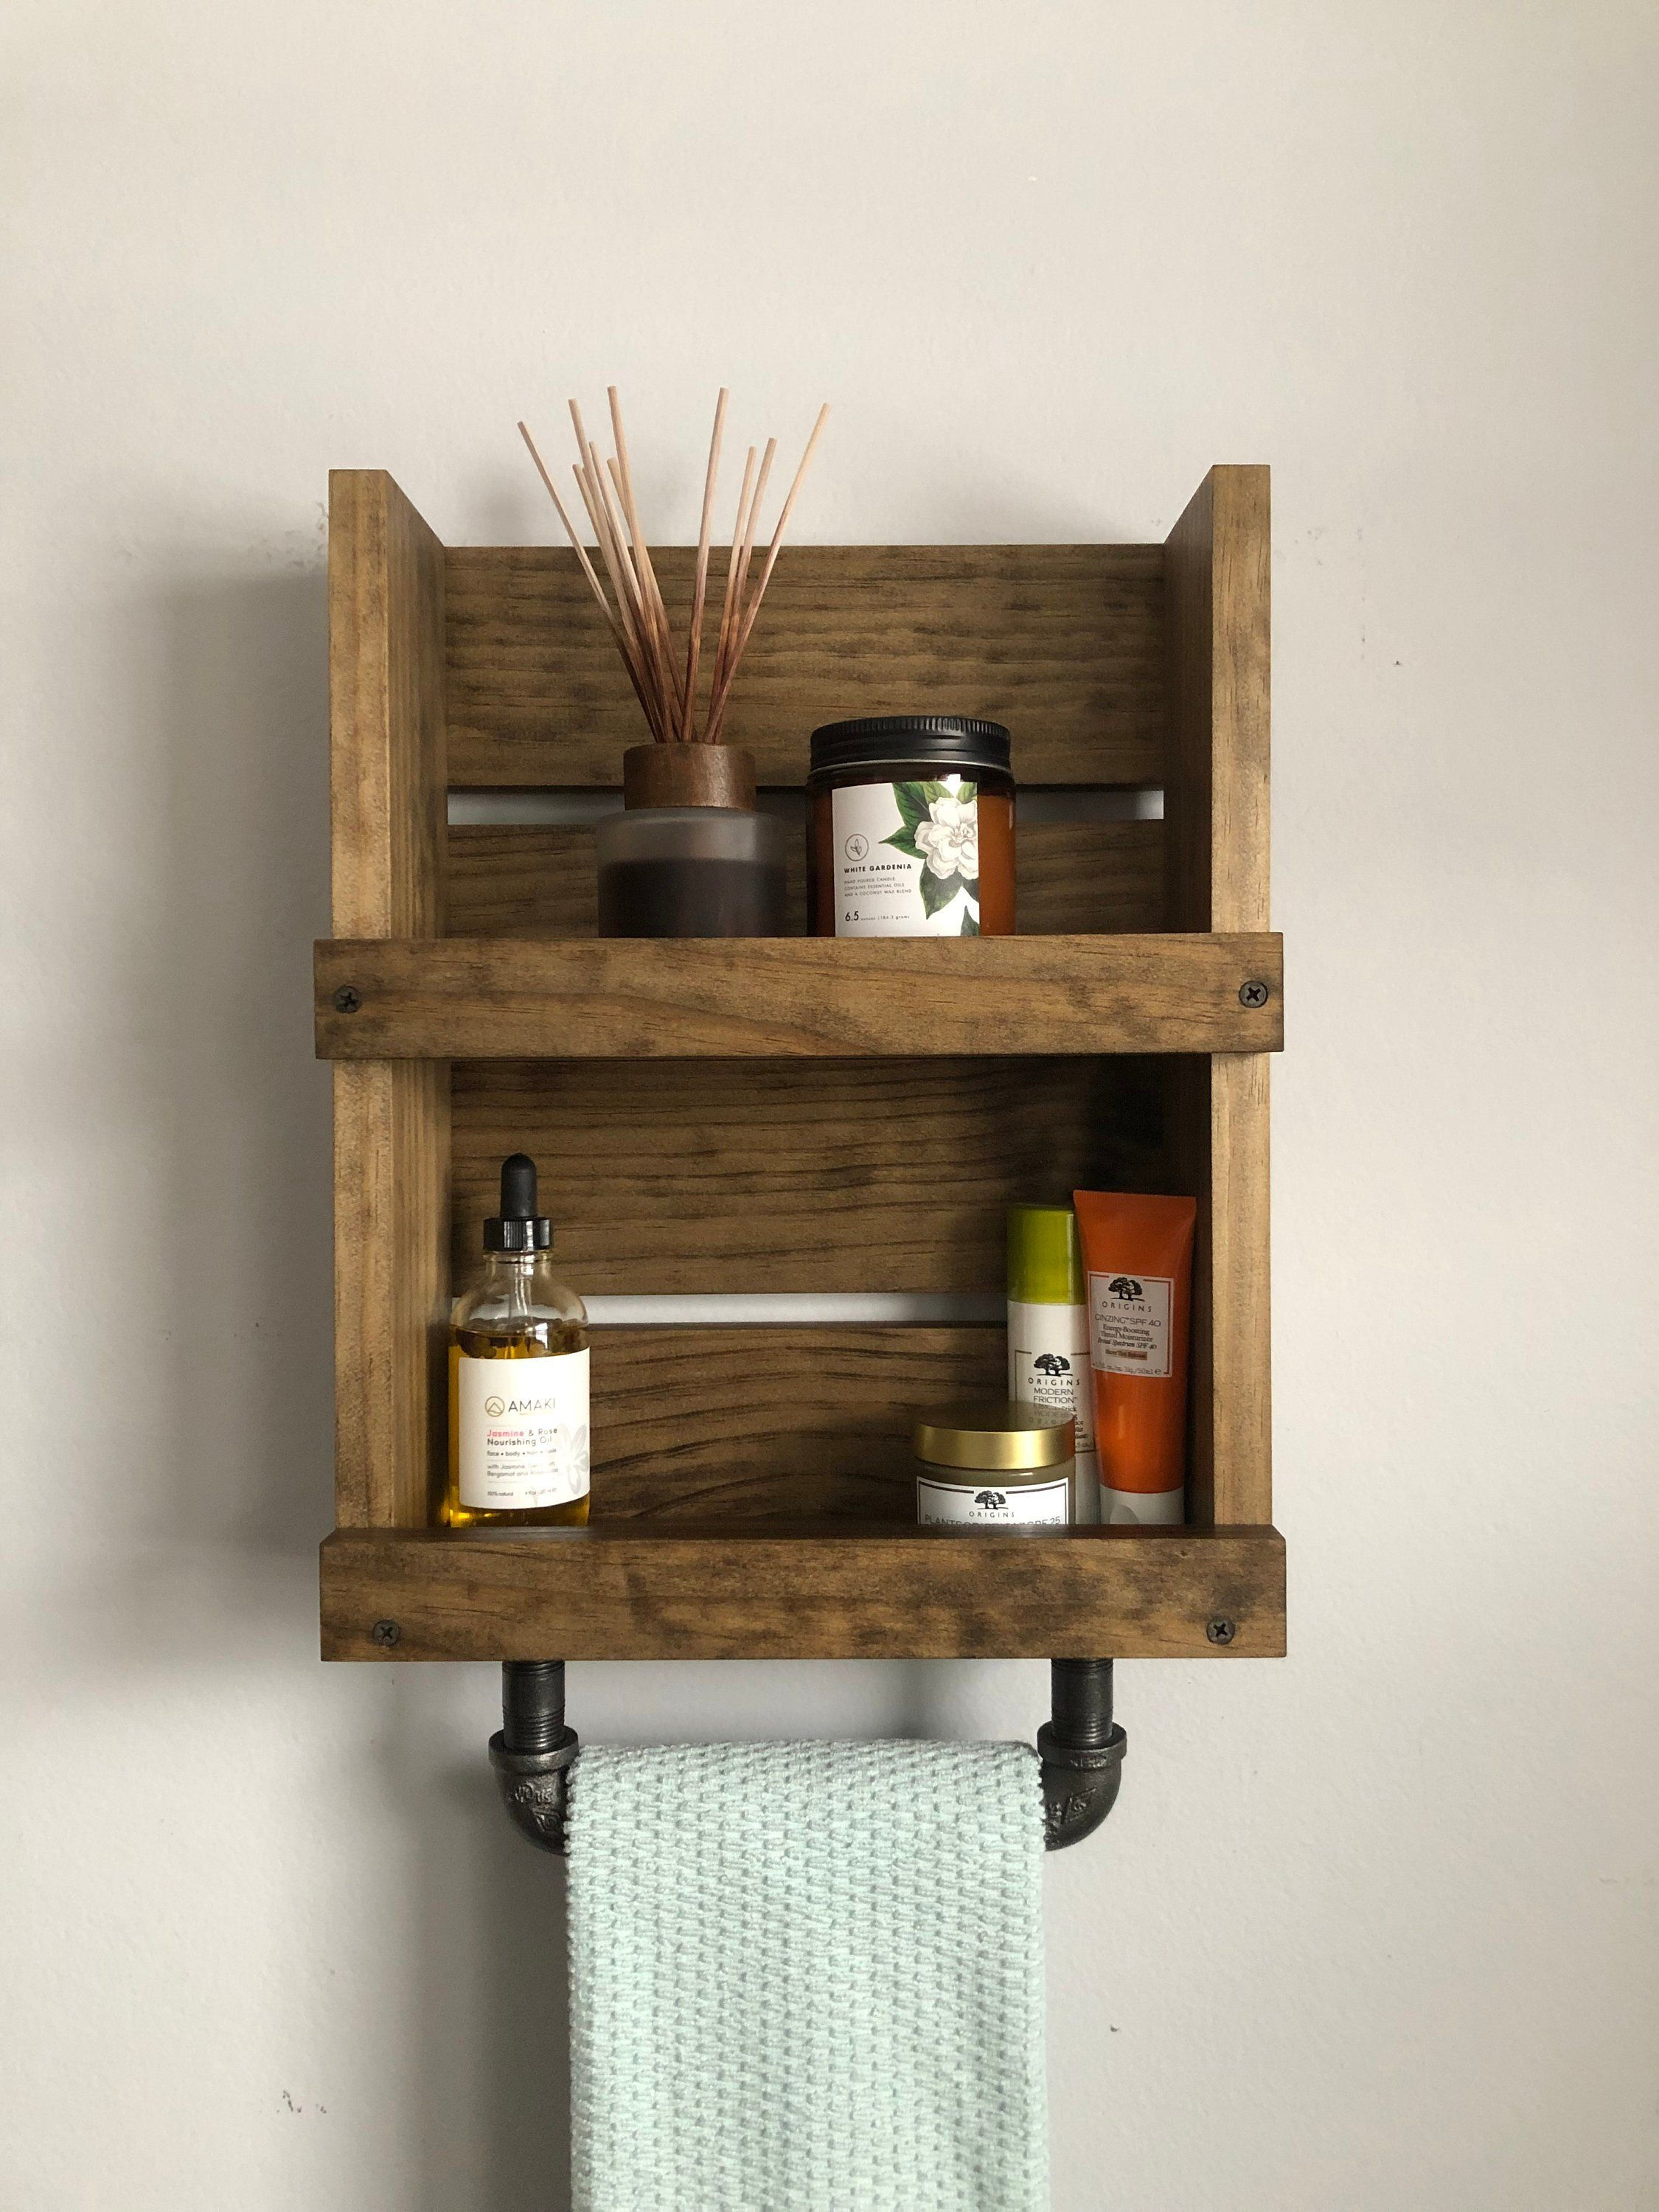 New Item Small Shelf With Towel Bar Wall Mounted Shelf With